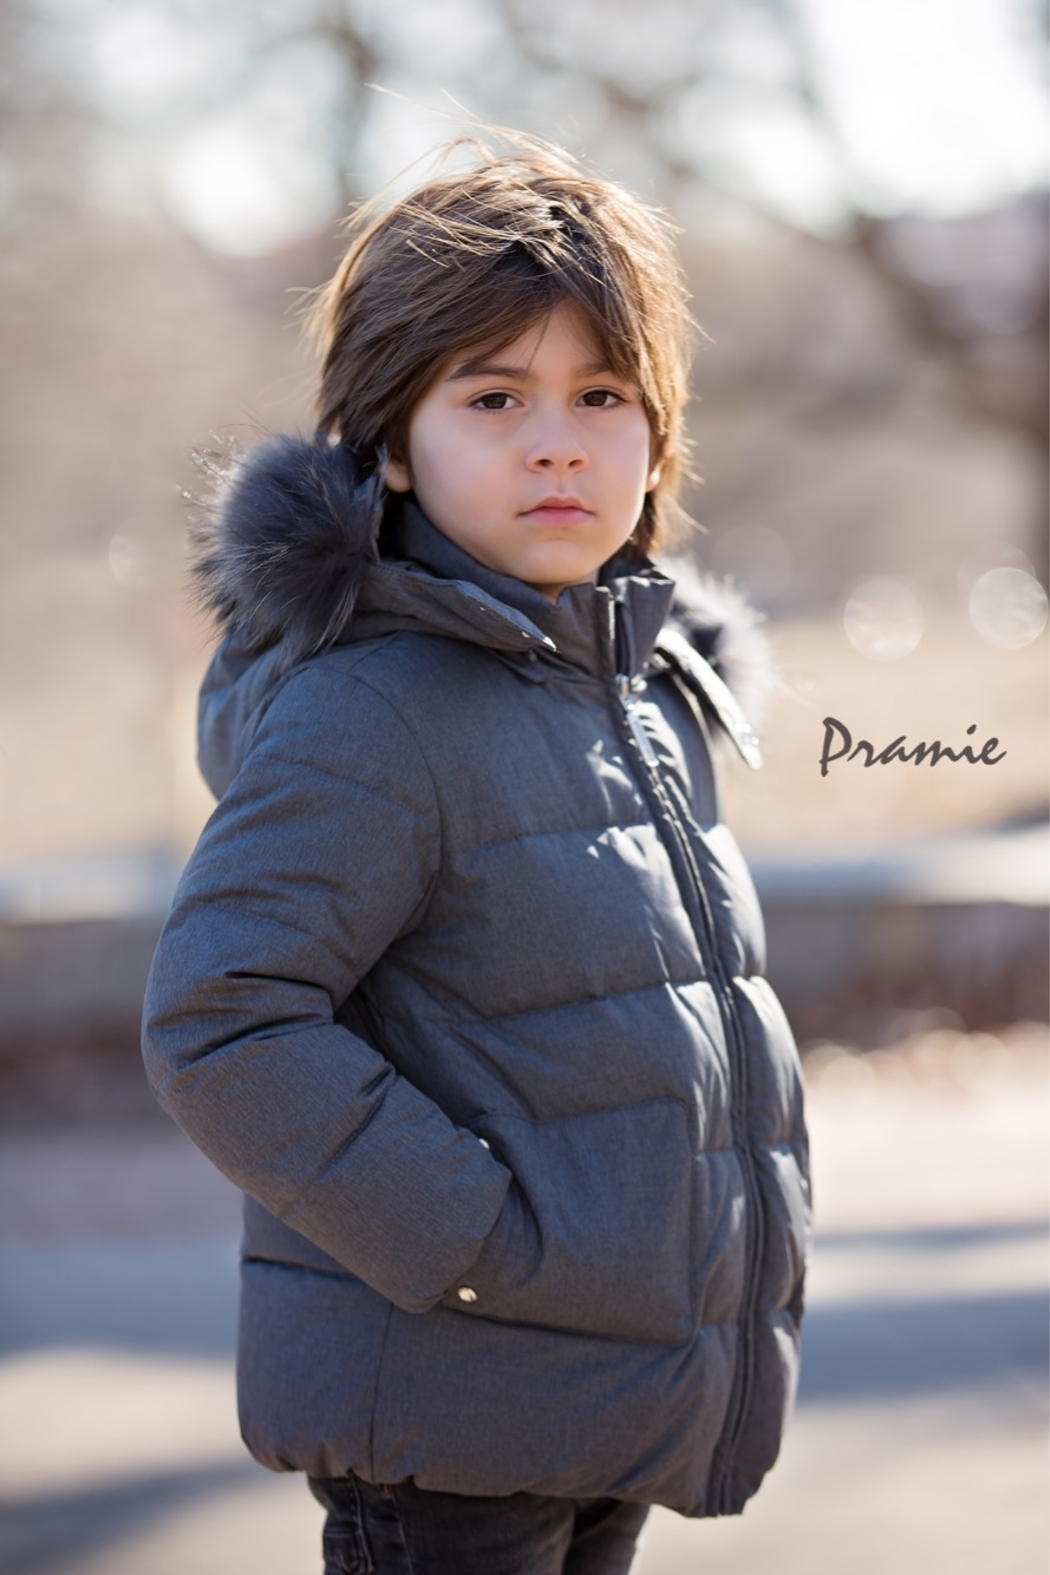 PRAMIE Boys and Girls' Down Filled-Quilted Hooded Jacket Genuine Fur-Trimmed (Unisex) - Main Image